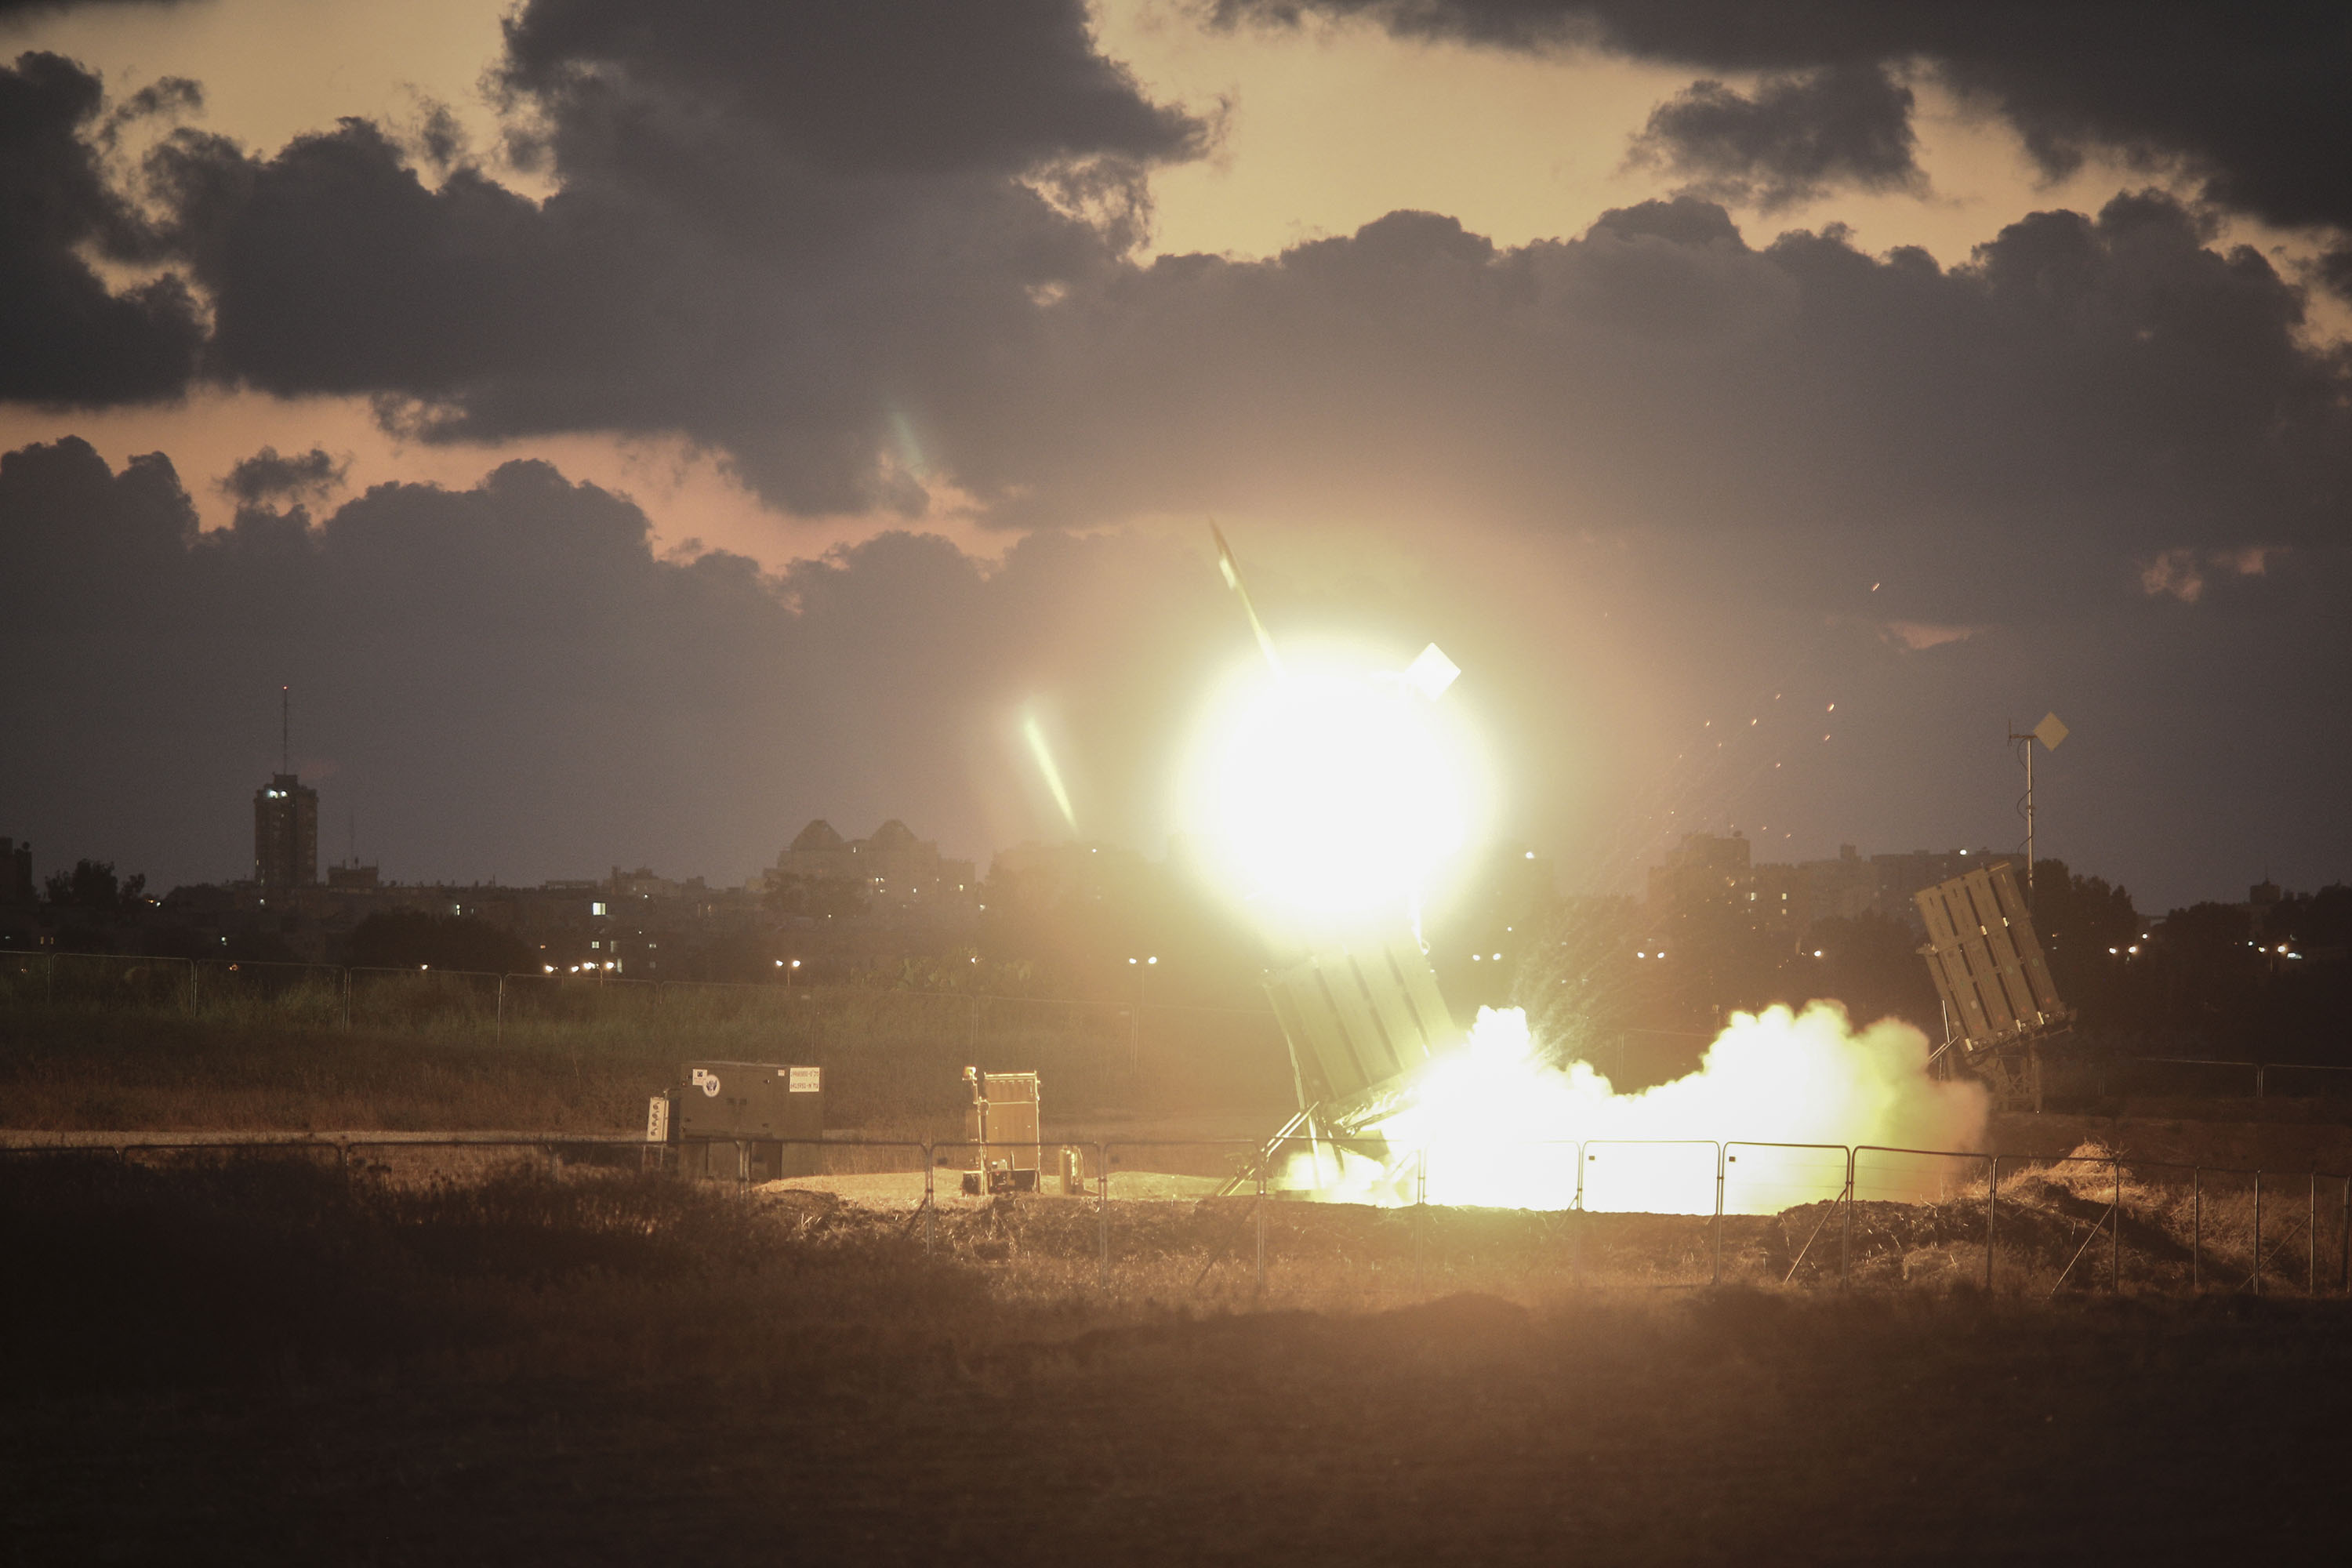 Israel declares operational capability for sea-based Iron Dome